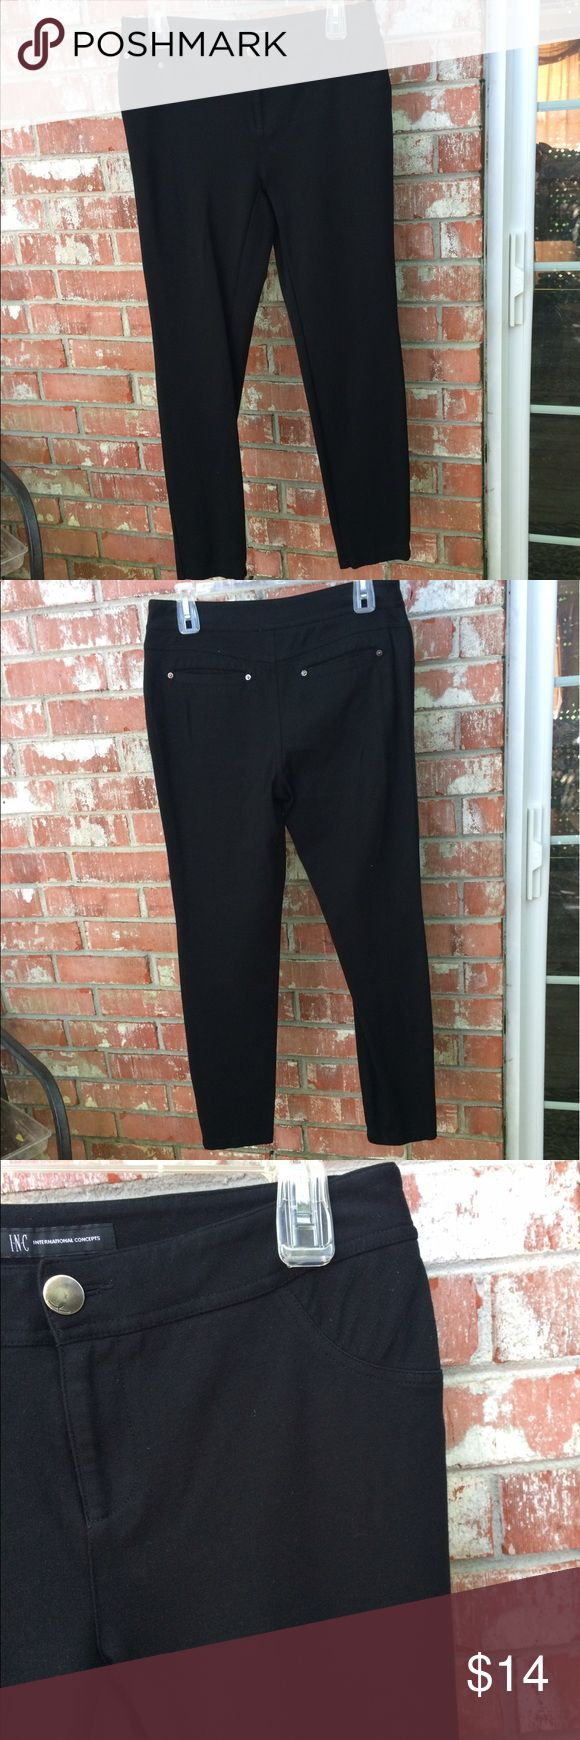 """INC Black Legging Pants 2 back pockets. Medium thickness. Zips and buttons. 29"""" inseam, 9"""" rise, 15"""" waist. 65% rayon, 30% nylon, 5% spandex. Worn a few times. Always gently washed and line dried. In new condition. INC International Concepts Pants Skinny"""